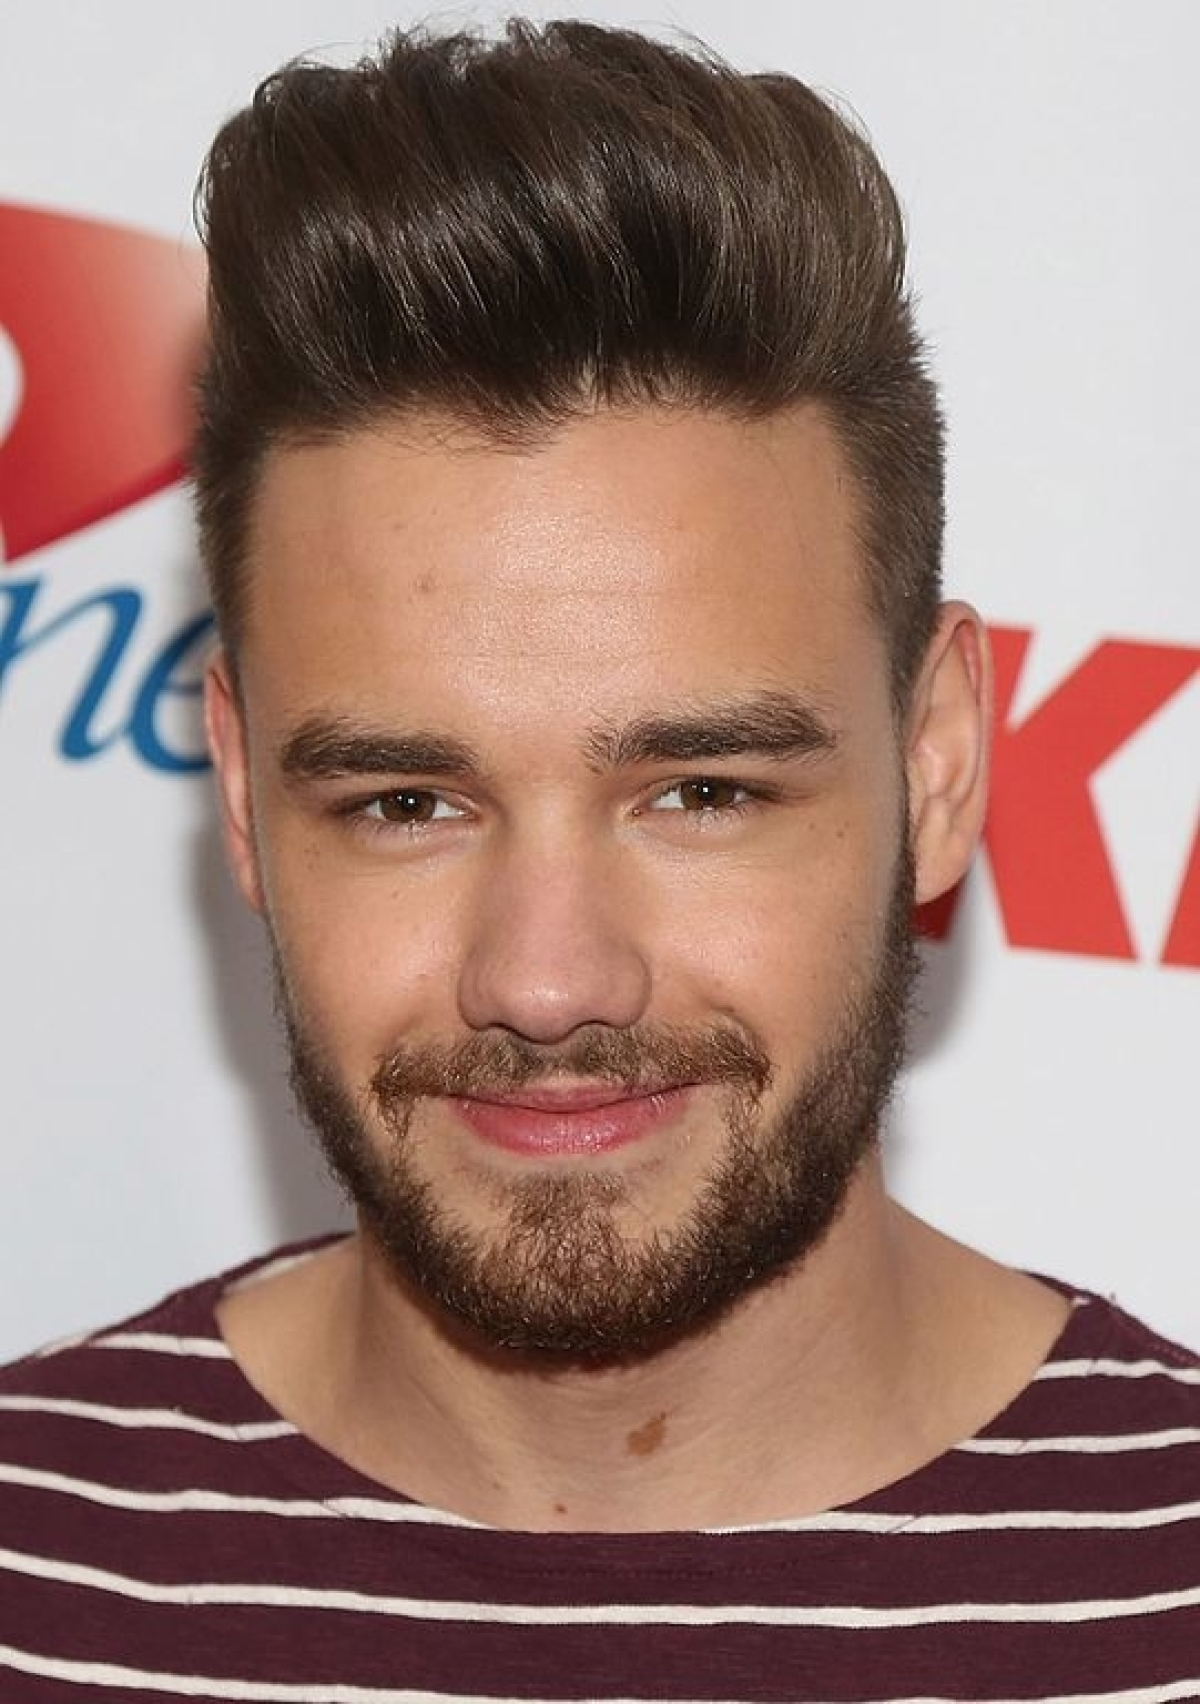 One Directions Liam Payne Being Tapped Up For New West